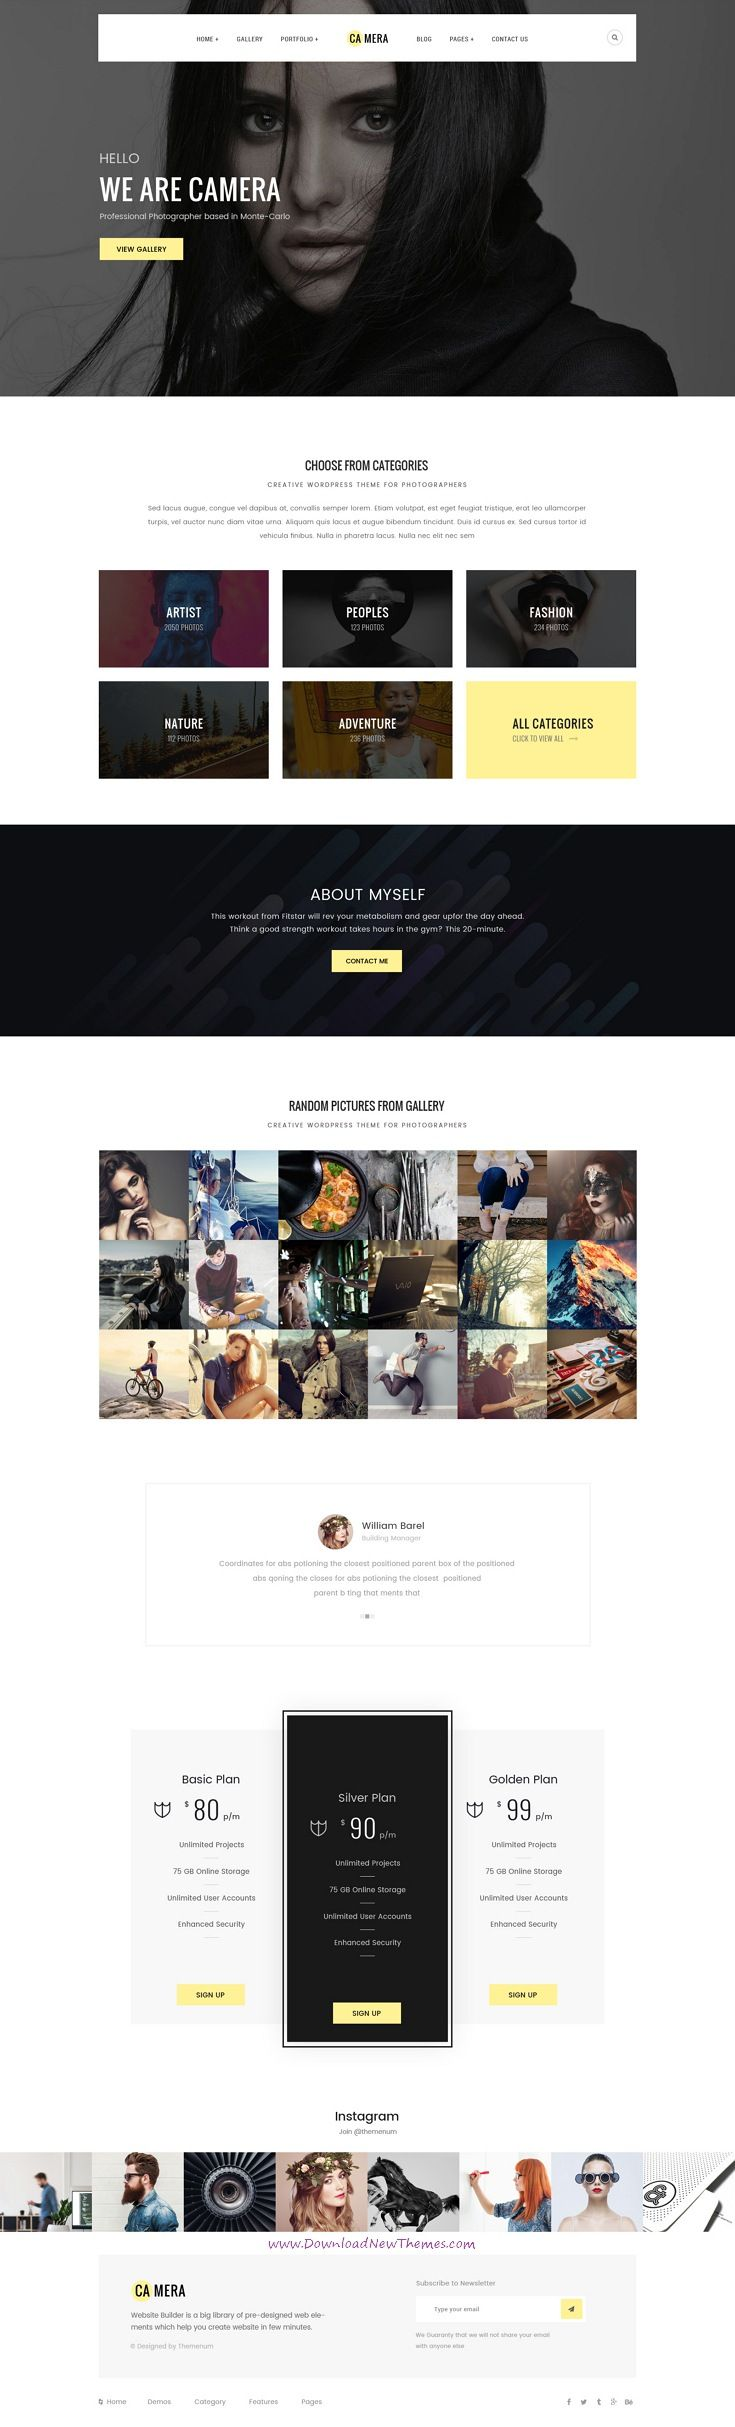 Camera is clean and modern pixel-perfect design PSD template for photographers and #portfolio showcase website with 34 layered PSD pages in light and dark versions to live preview & download click on Visit 👆 #photography #psdmockups